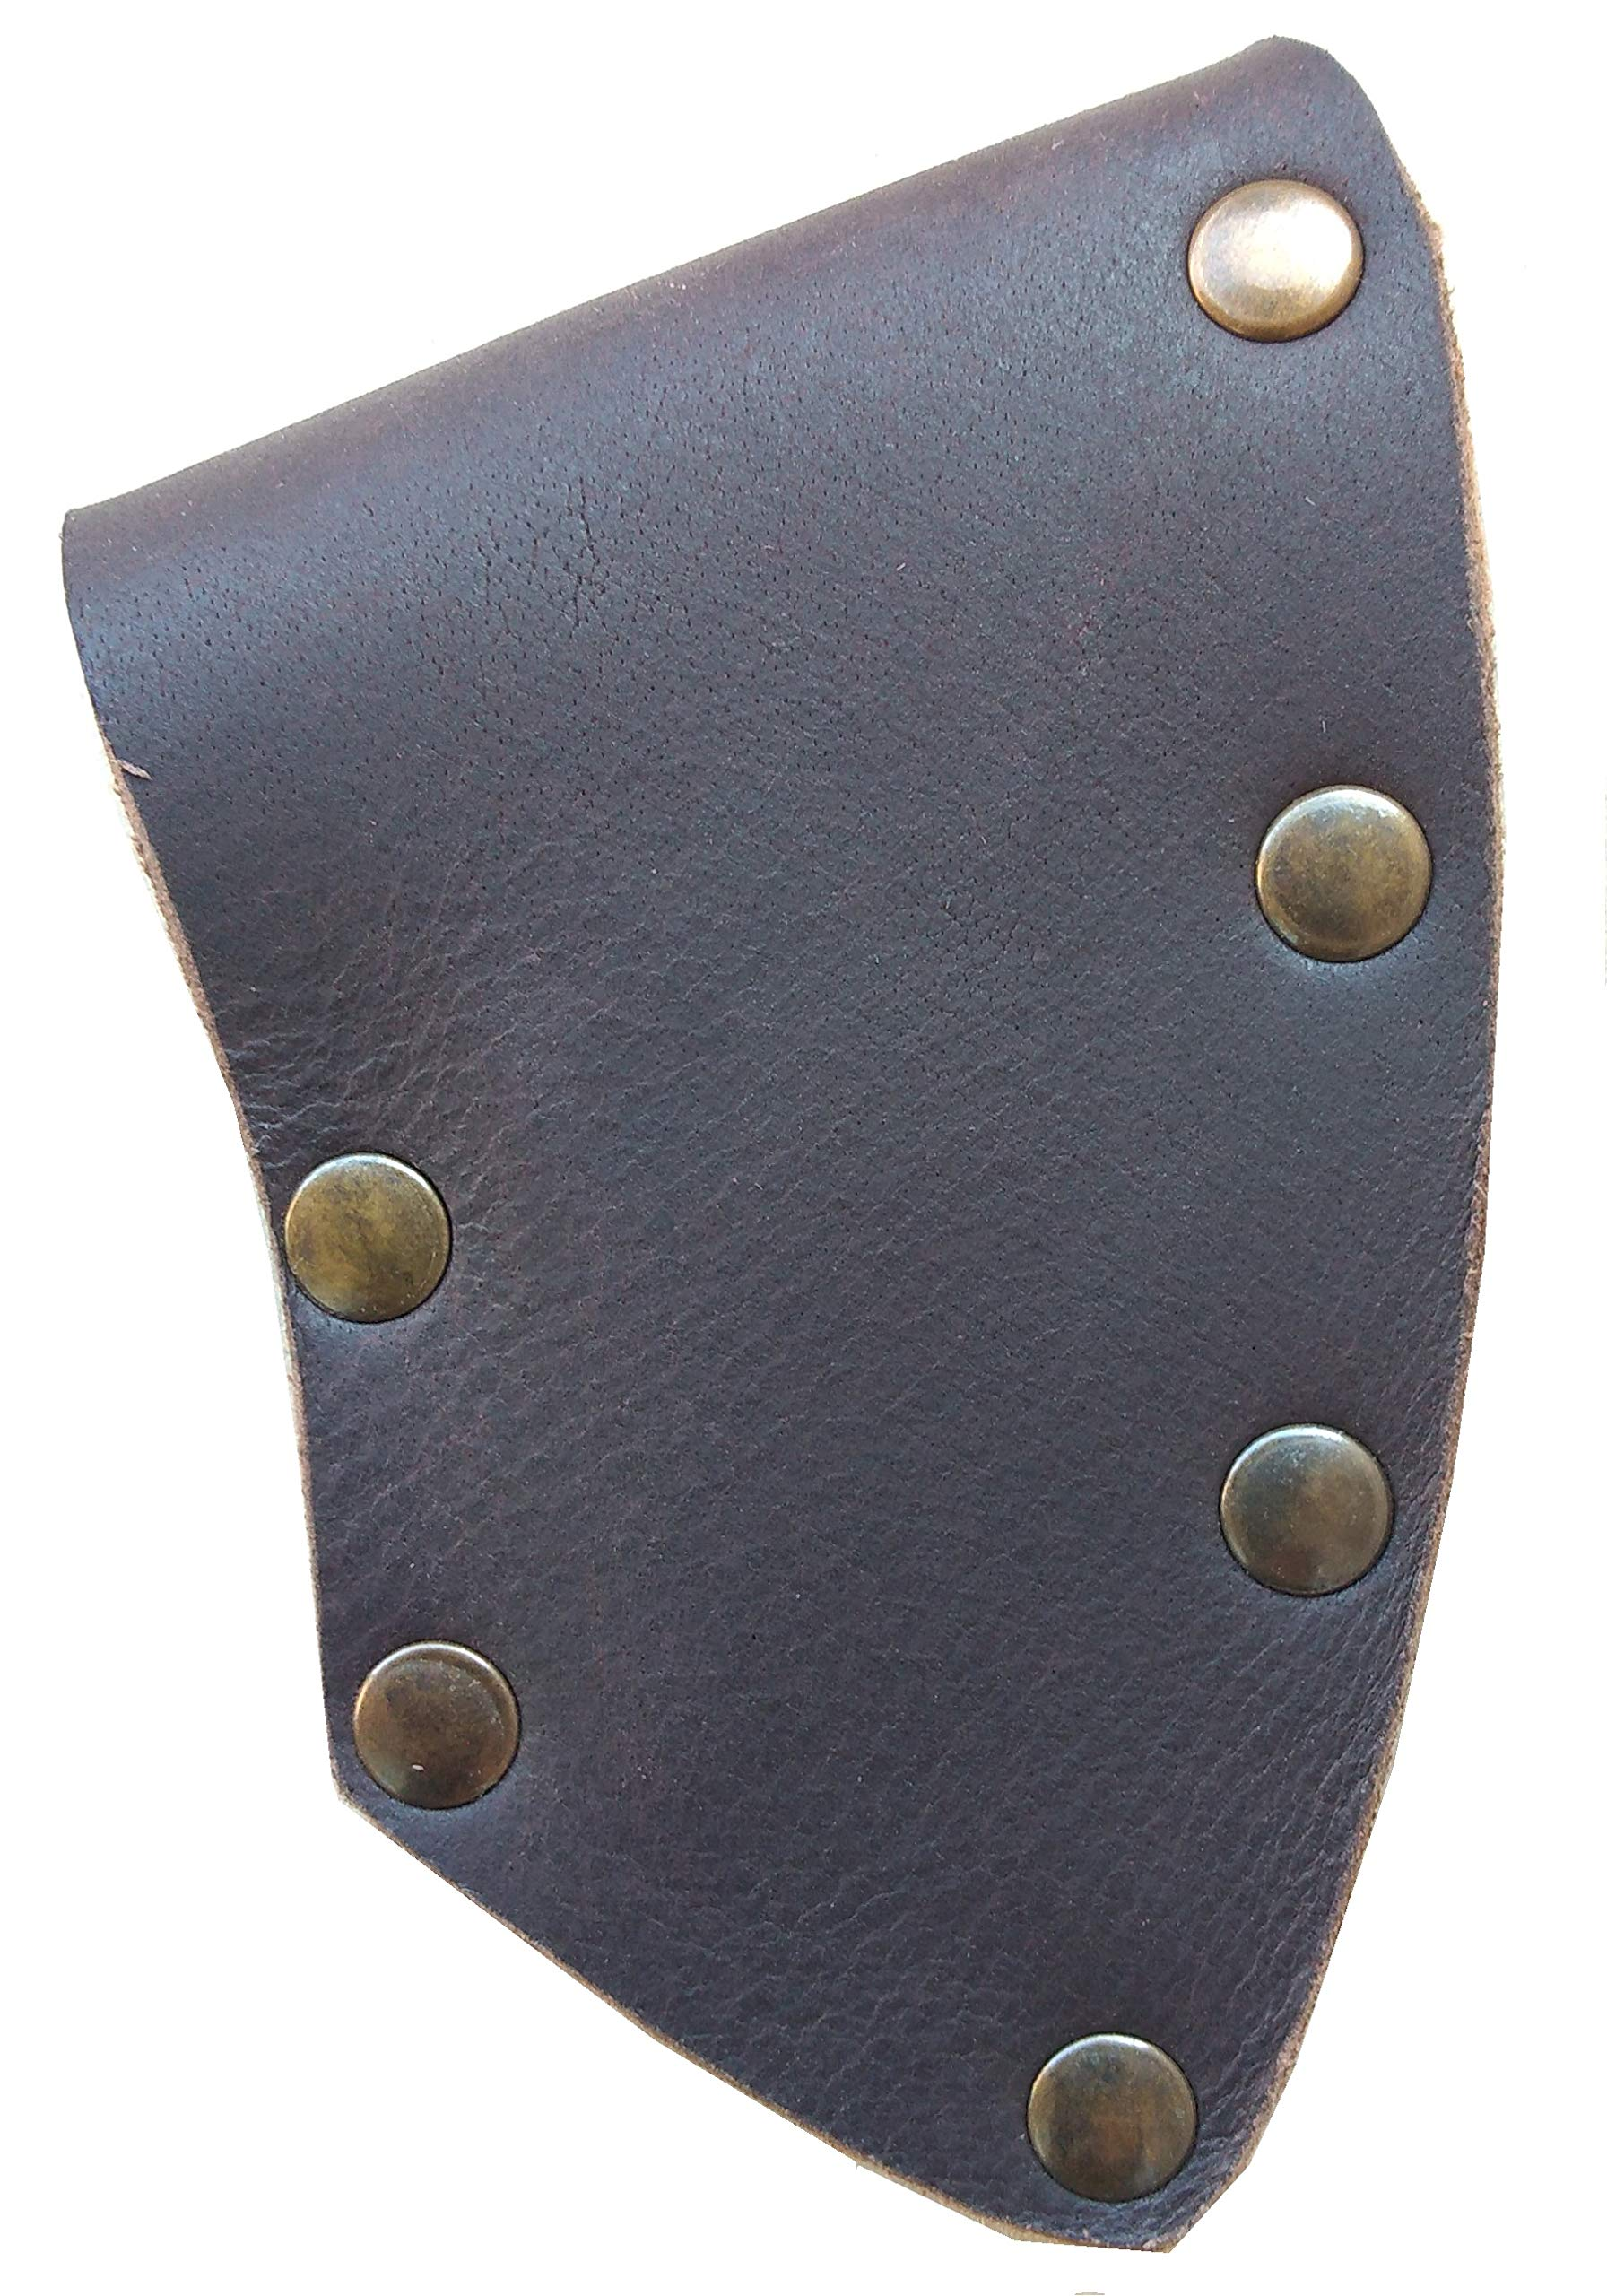 Leather sheath for the small axe by mapsyst (Image #4)